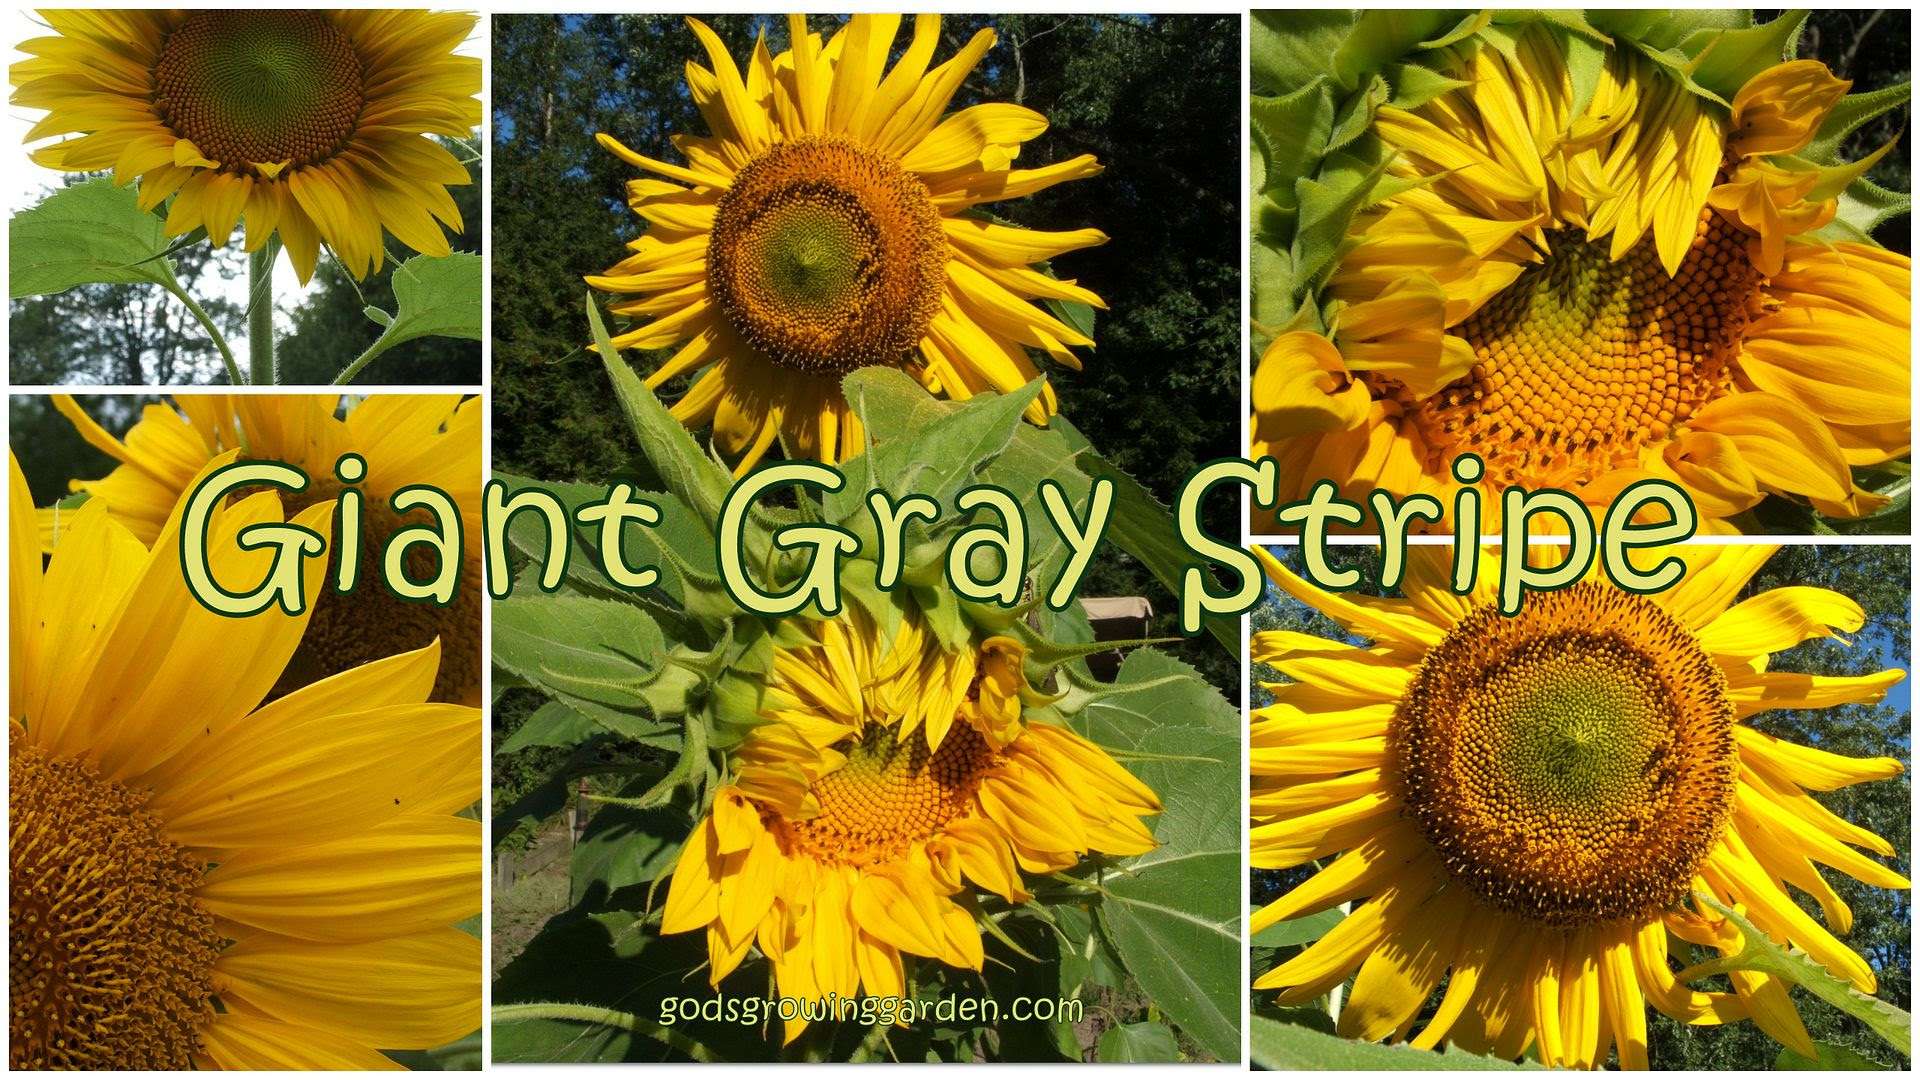 sunflowers by Angie Ouellette-Tower for godsgrowinggarden.com photo 2013-09-01_zpse1f84b06.jpg